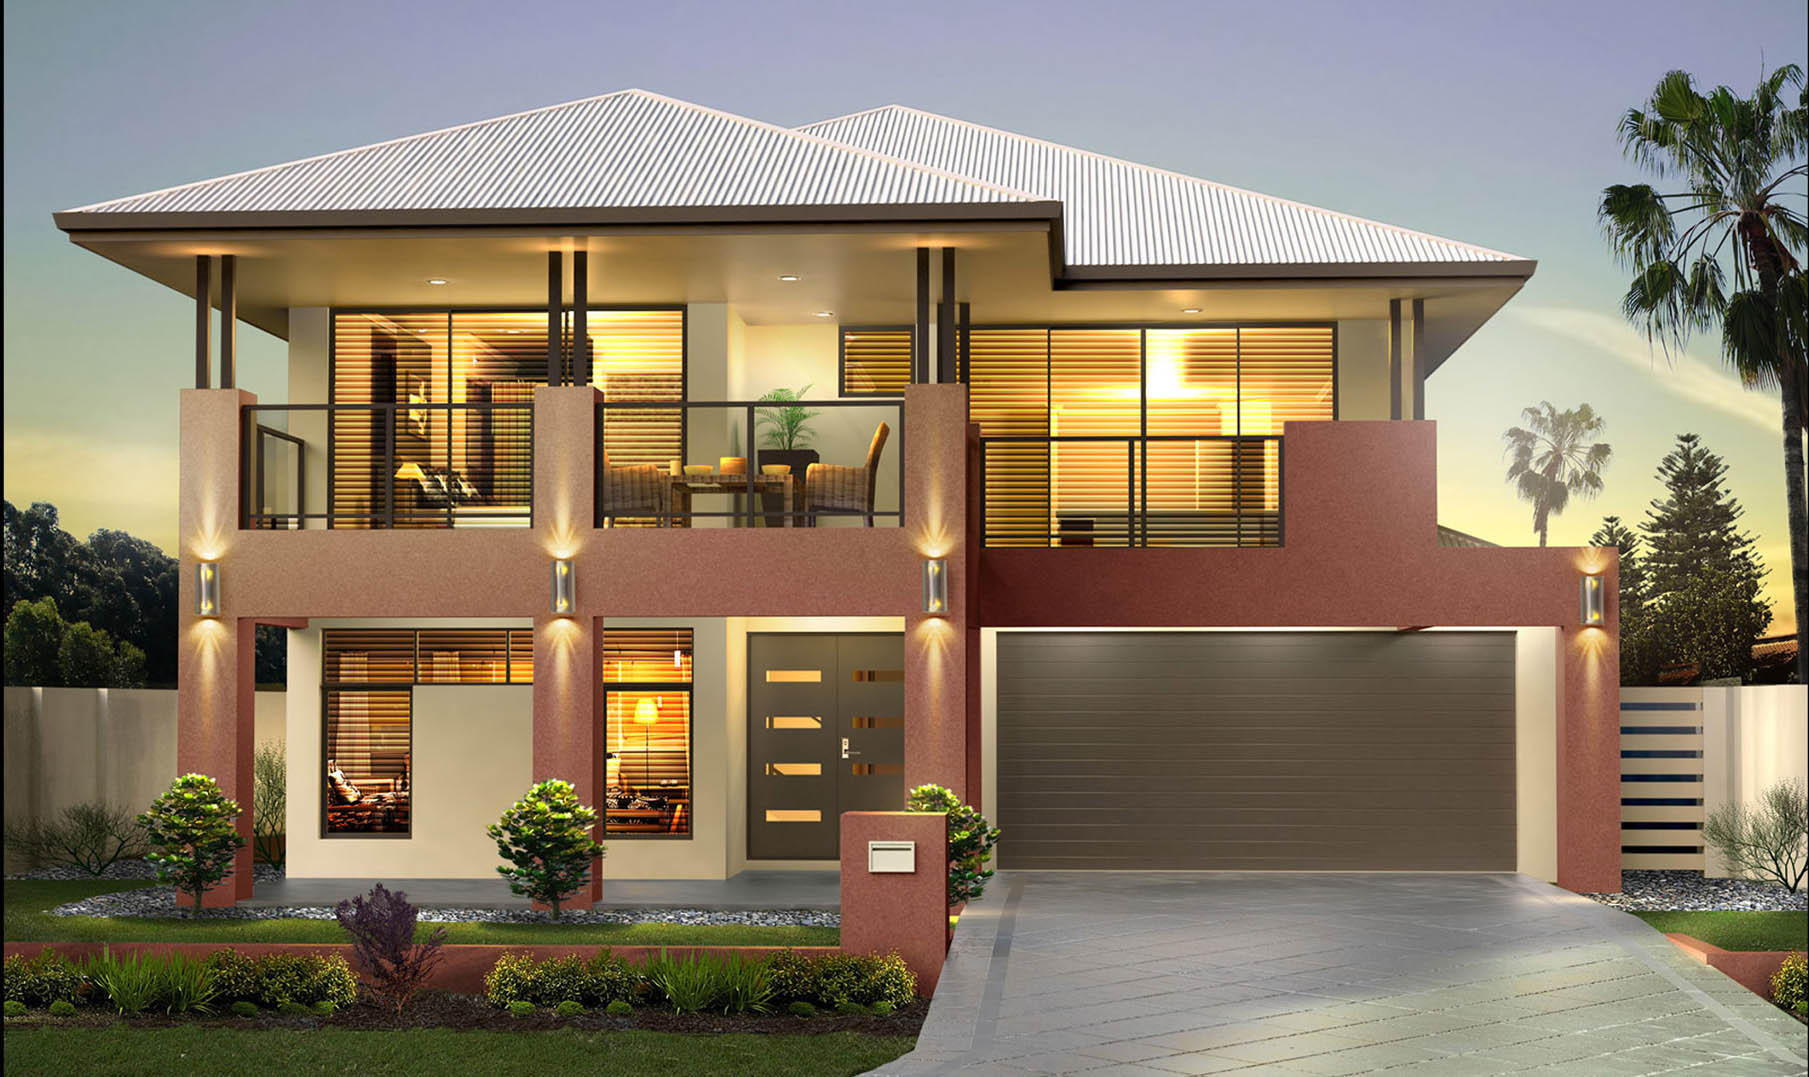 San remo series 1 upstairs living new 2 storey homes perth for Home house design